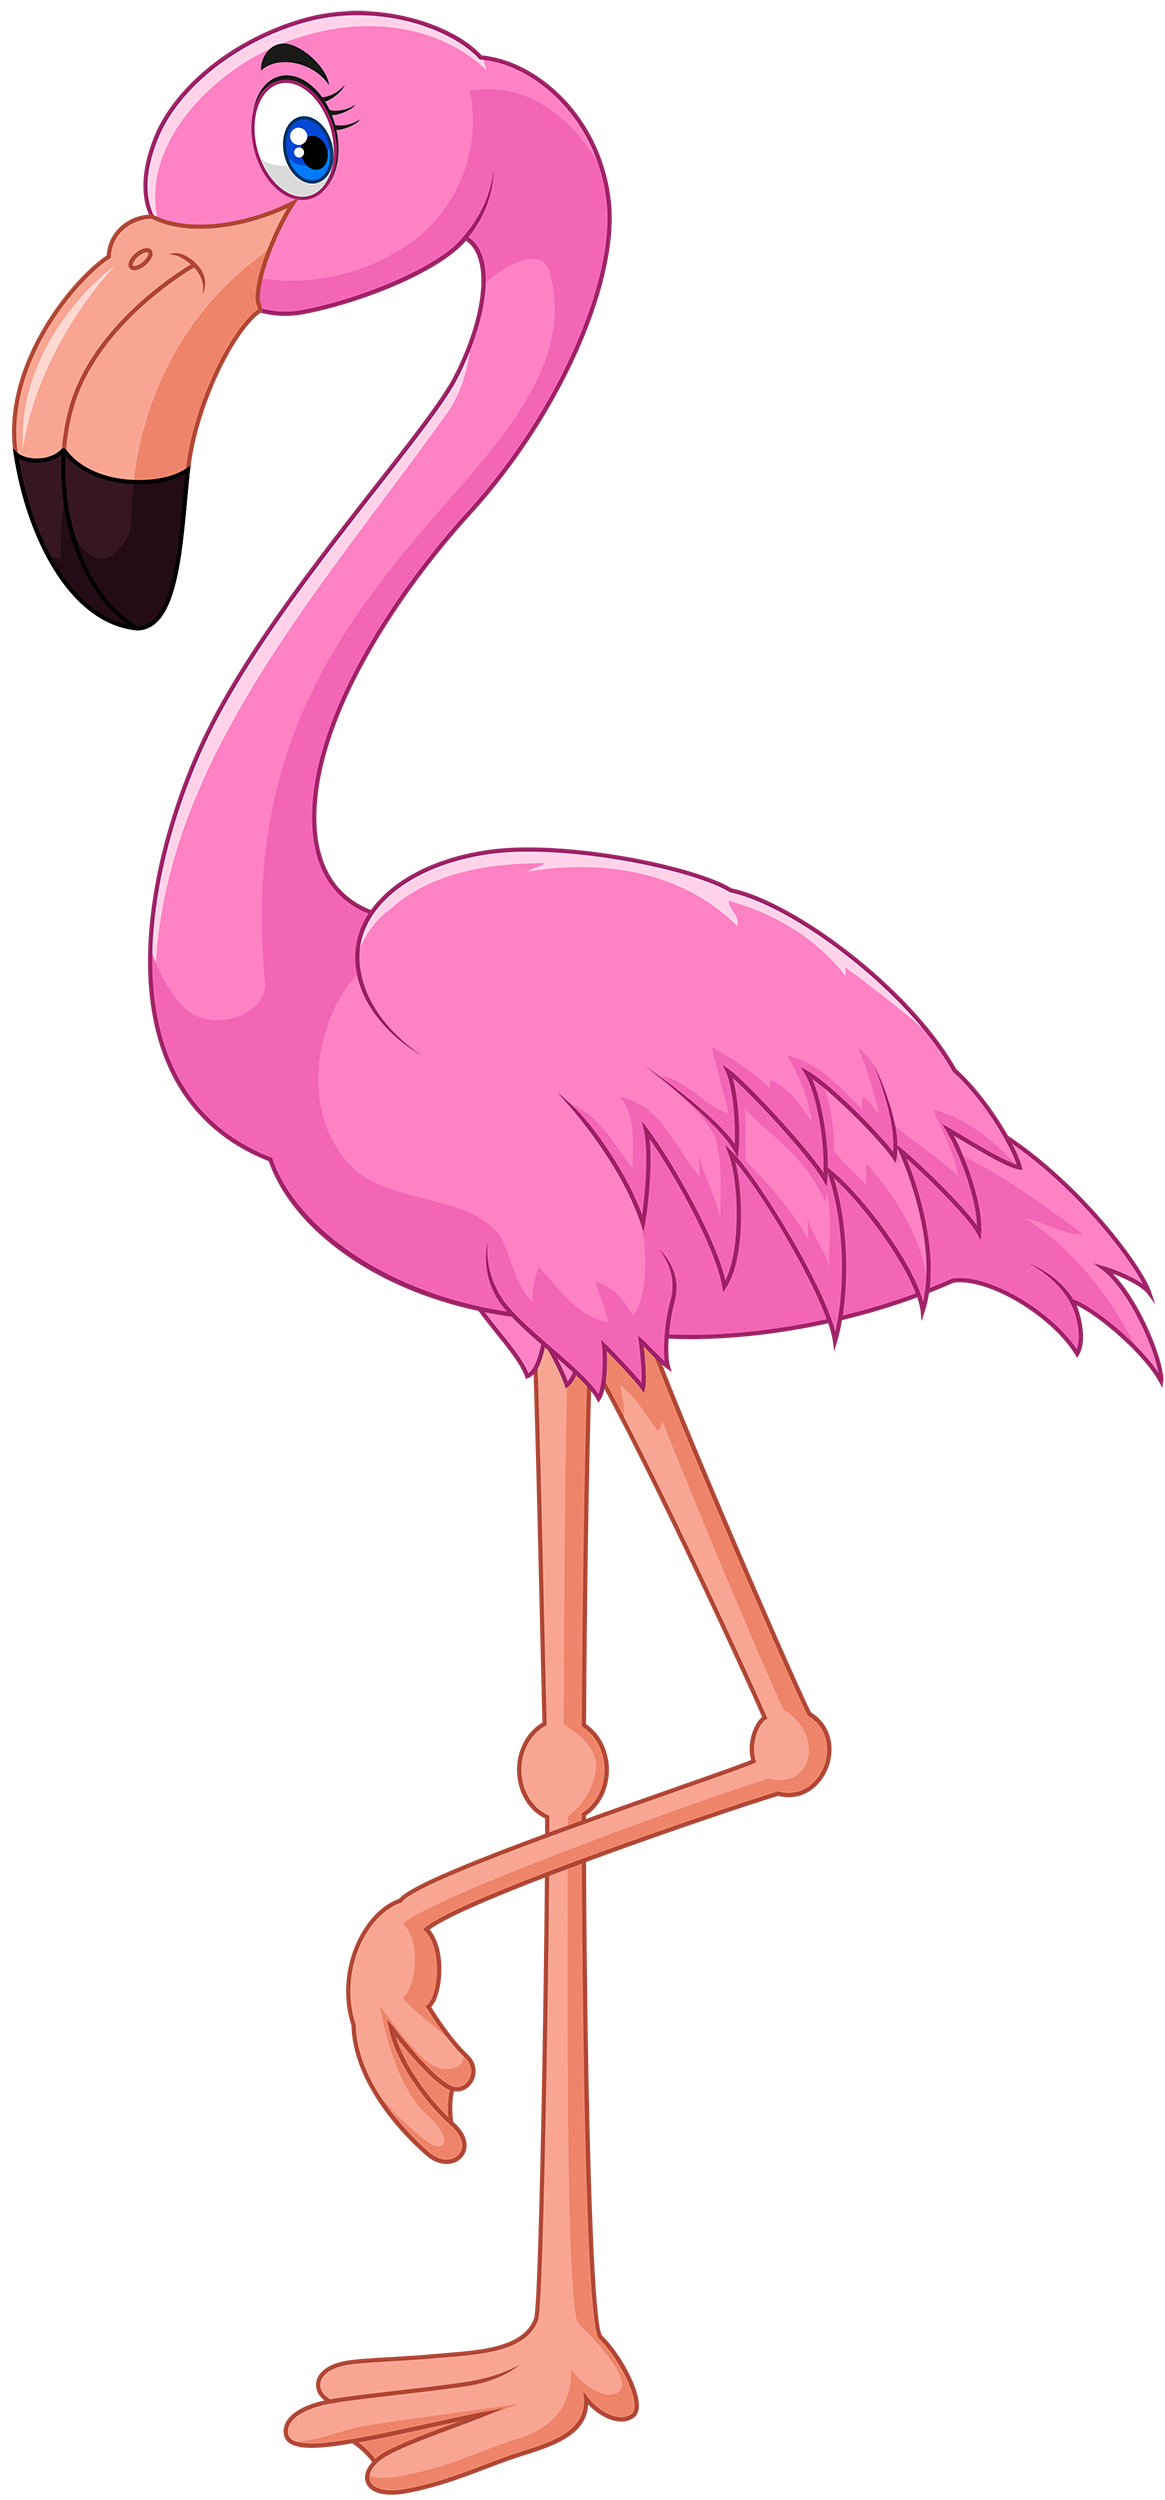 Flamingo clipart Clipart Flamingo Download #12 Flamingo